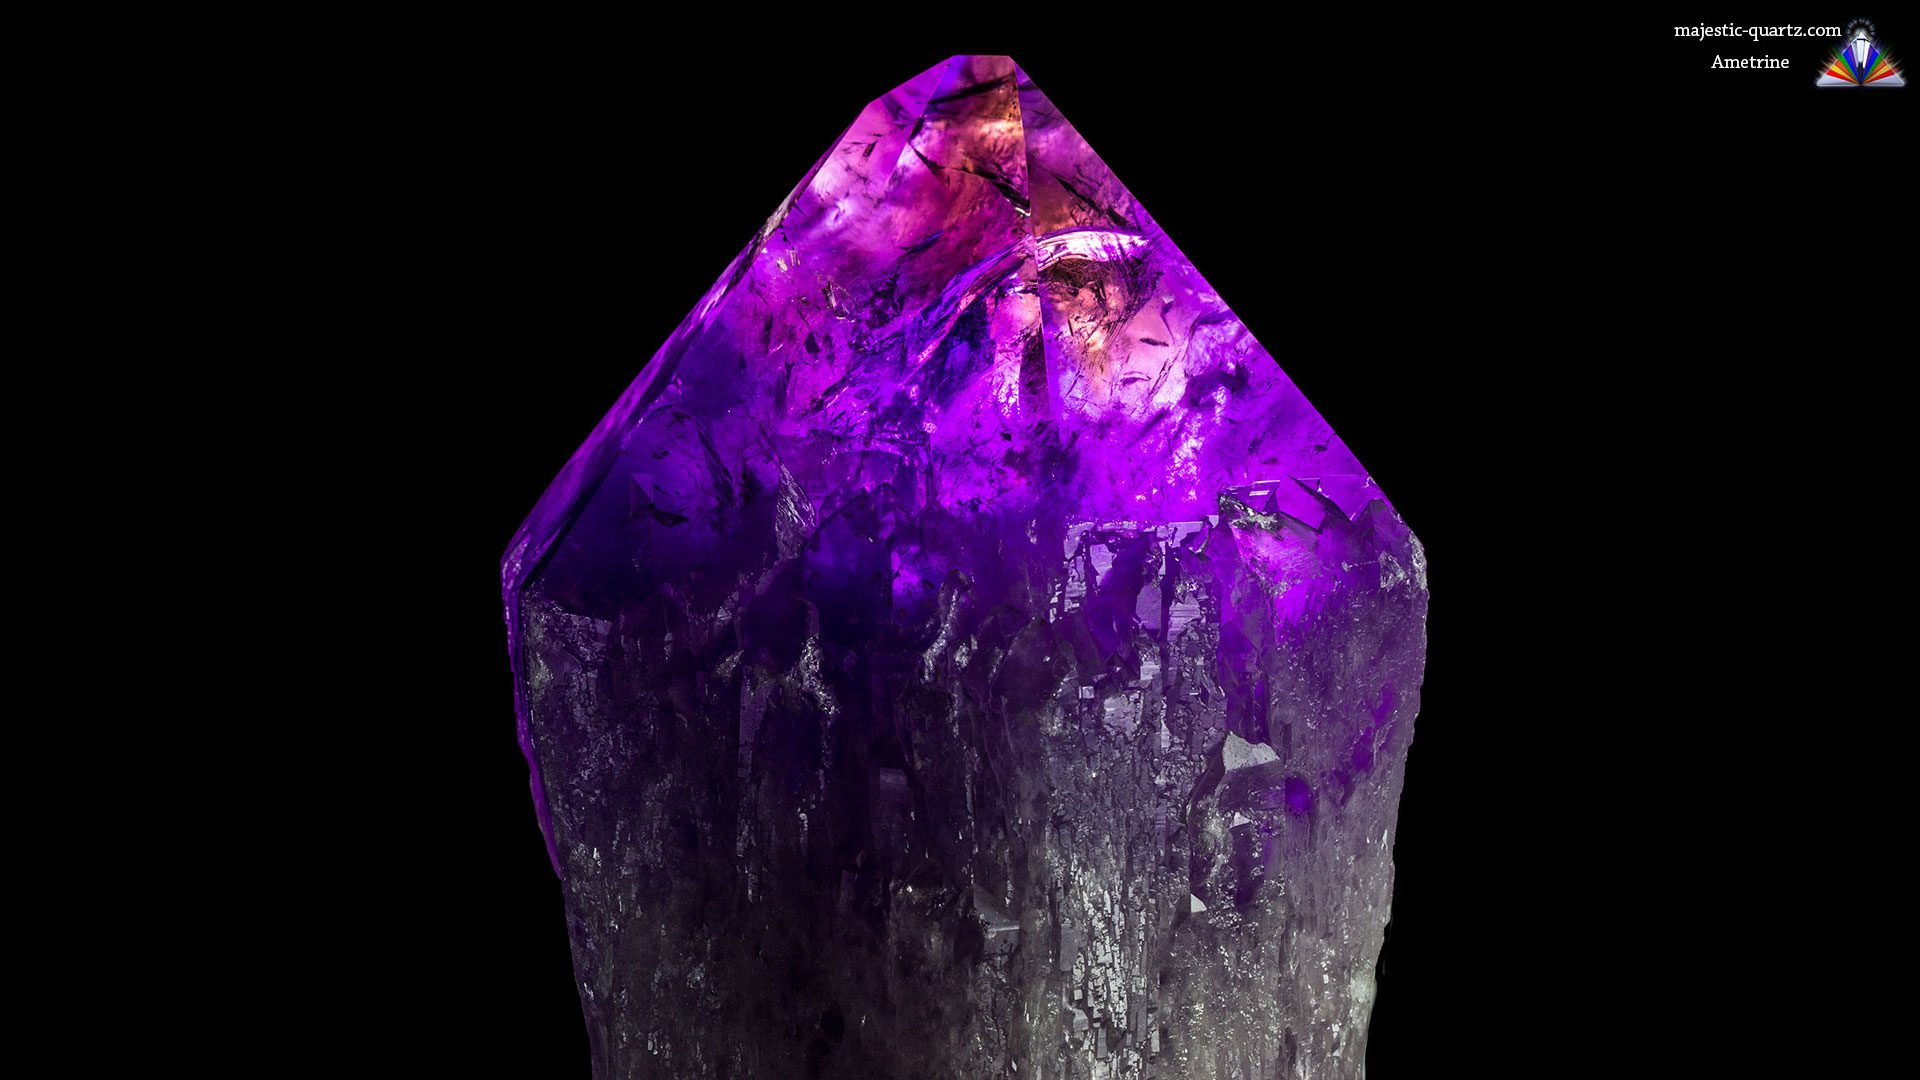 Ametrine Crystal - Photograph by Anthony Bradford